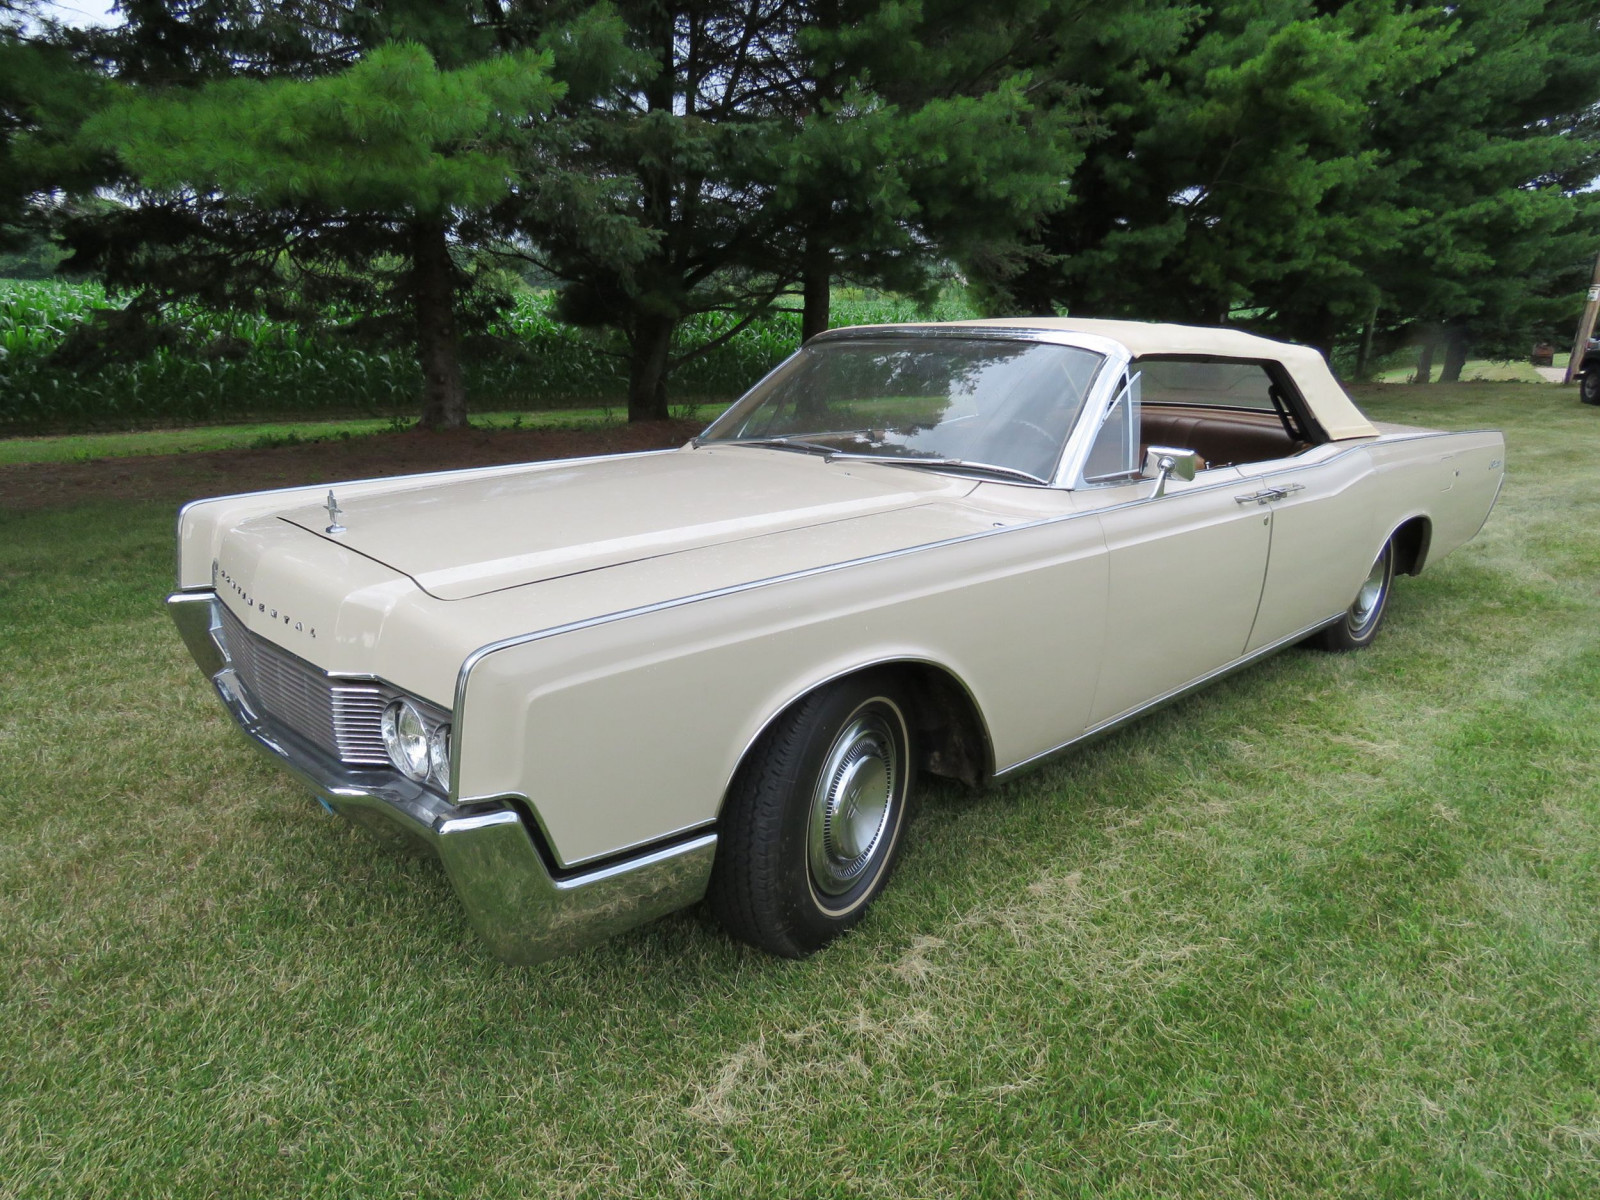 1967 Lincoln Continental 4dr Suicide Convertible - Image 1